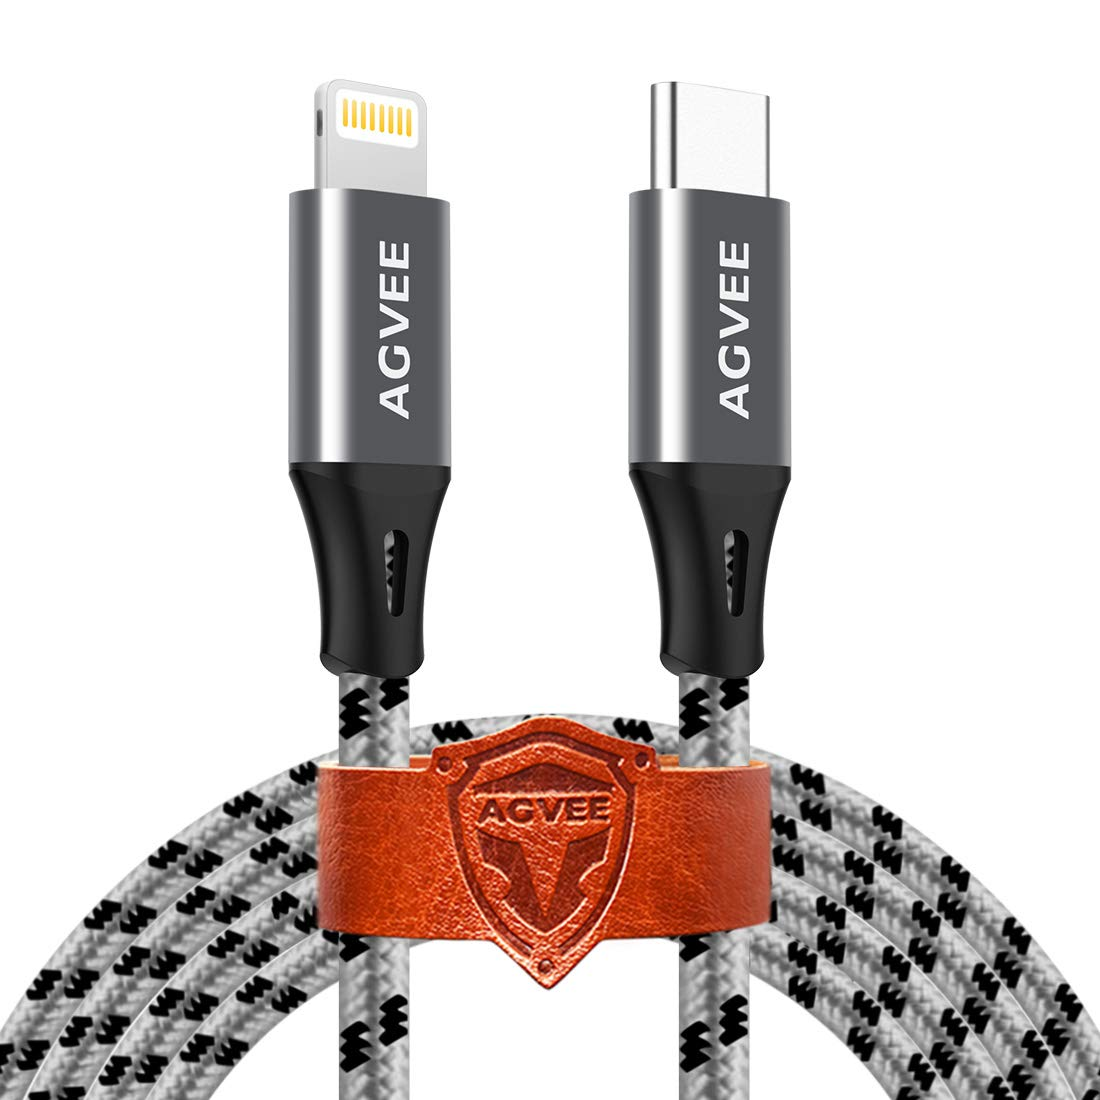 AGVEE [3 Pack 1.5ft] Short USB-C to Lightning Charging Cable, Seamless Type-C End, Braided Charger Cord i-Phone 8 Pin Wire for iPhone 12 11 Pro Max, 12 Mini 11Pro SE2, Case Friendly, Gray